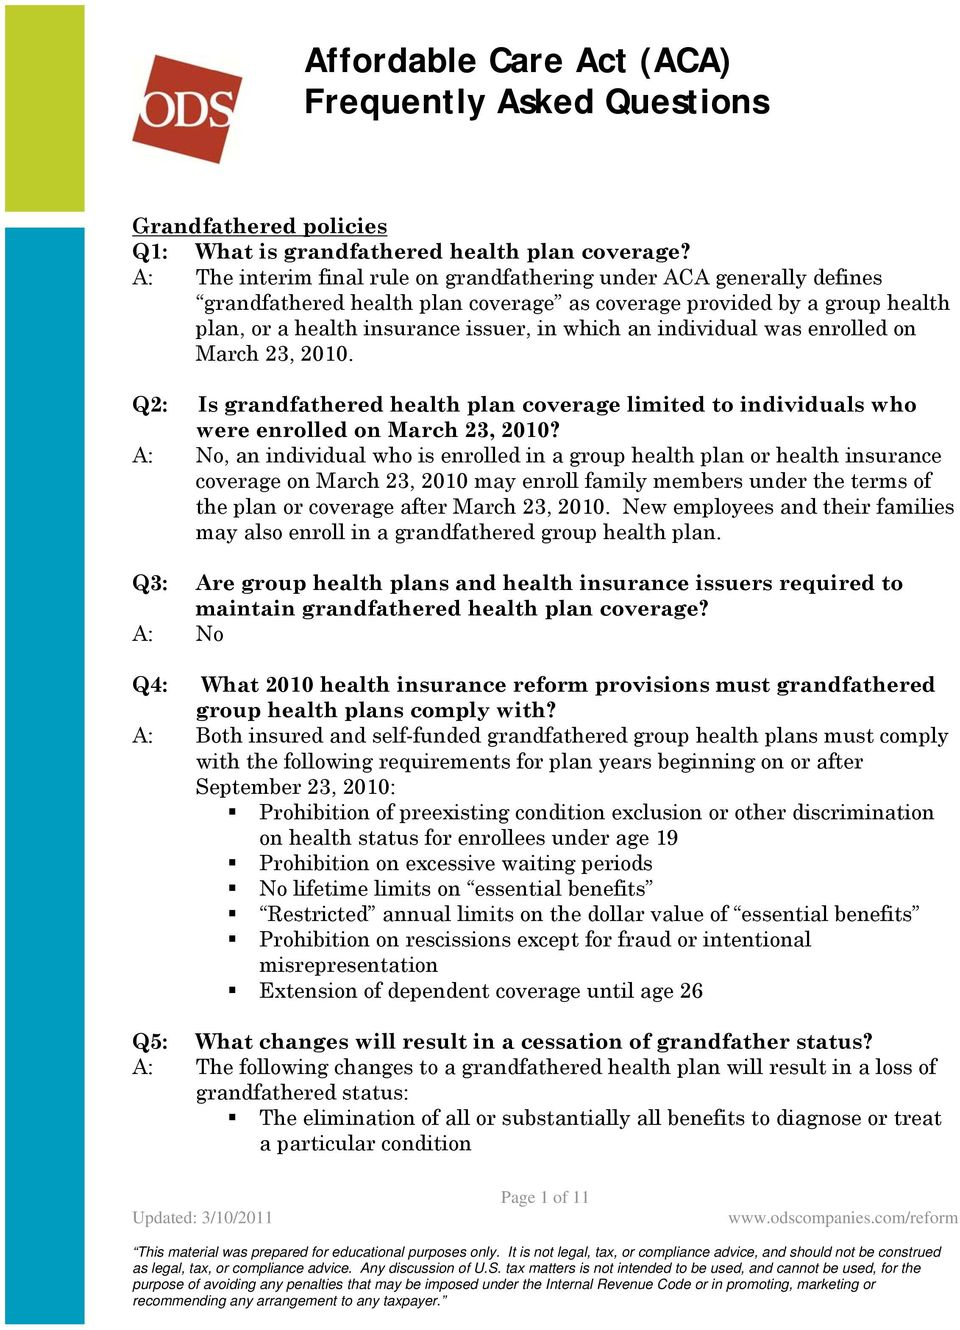 individual was enrolled on March 23, 2010. Q2: Is grandfathered health plan coverage limited to individuals who were enrolled on March 23, 2010?